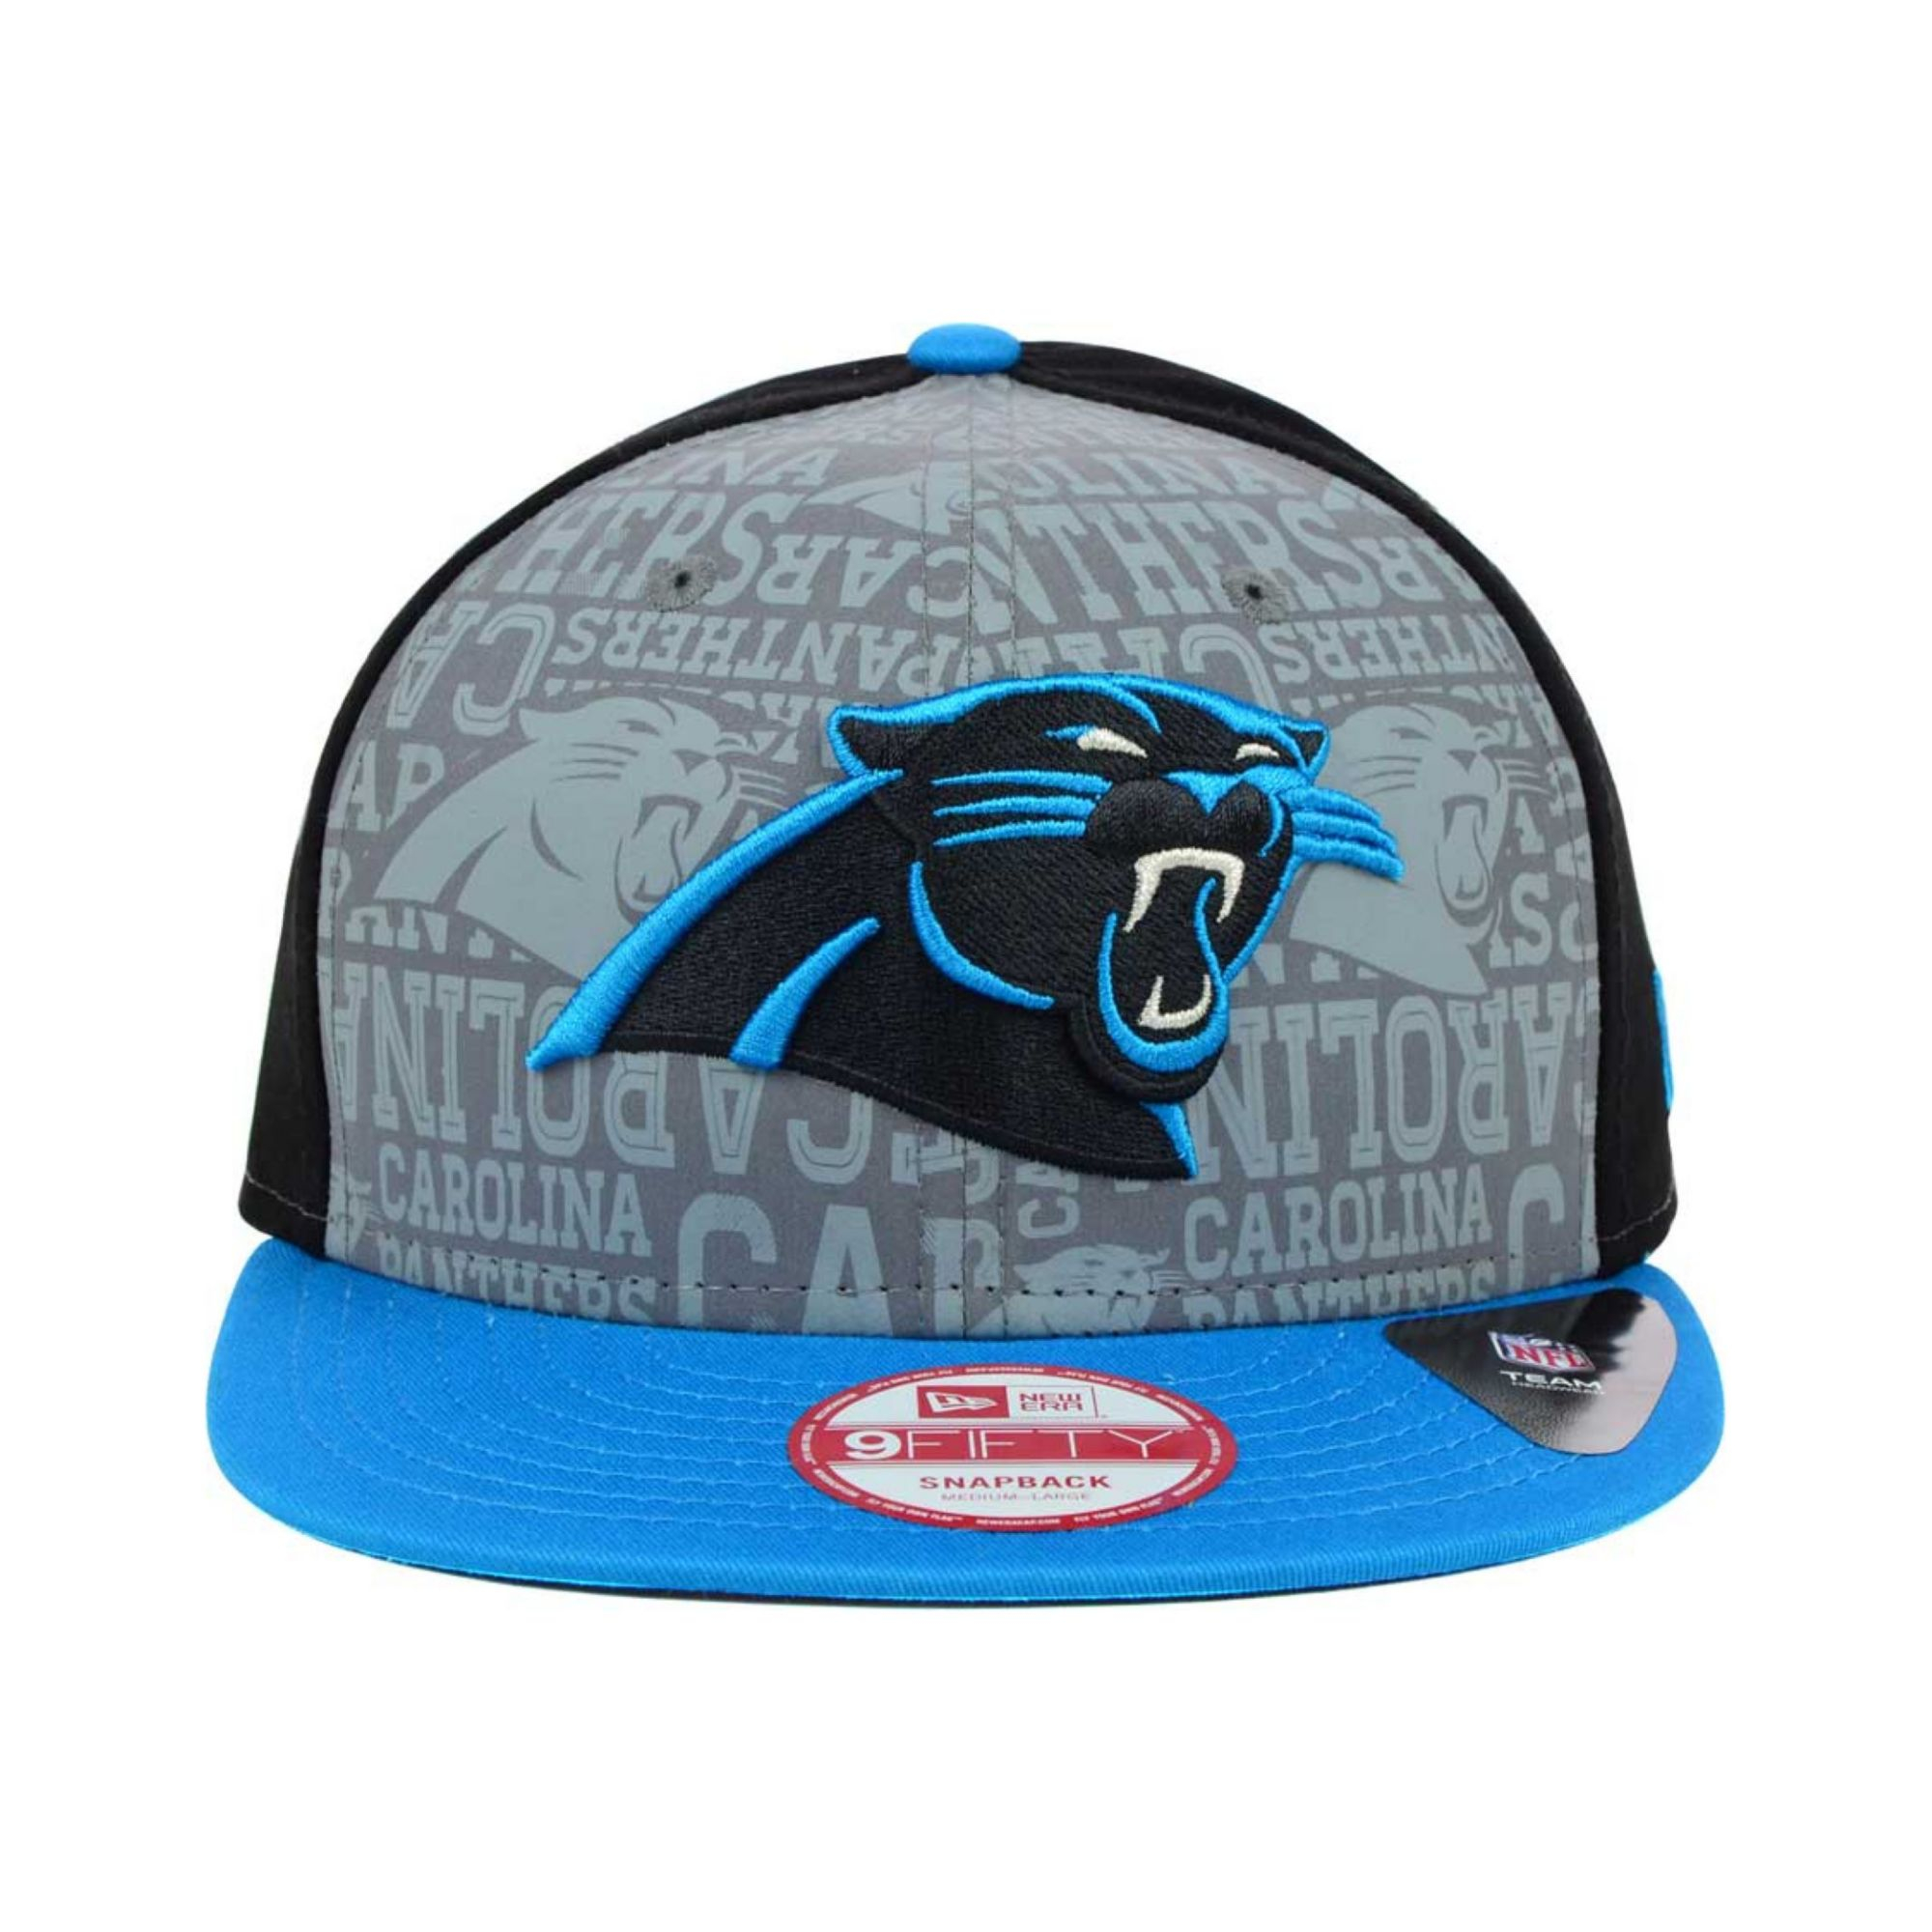 ... greece lyst ktz carolina panthers nfl draft 9fifty snapback cap in blue  for men 96064 f5838 f5554c174